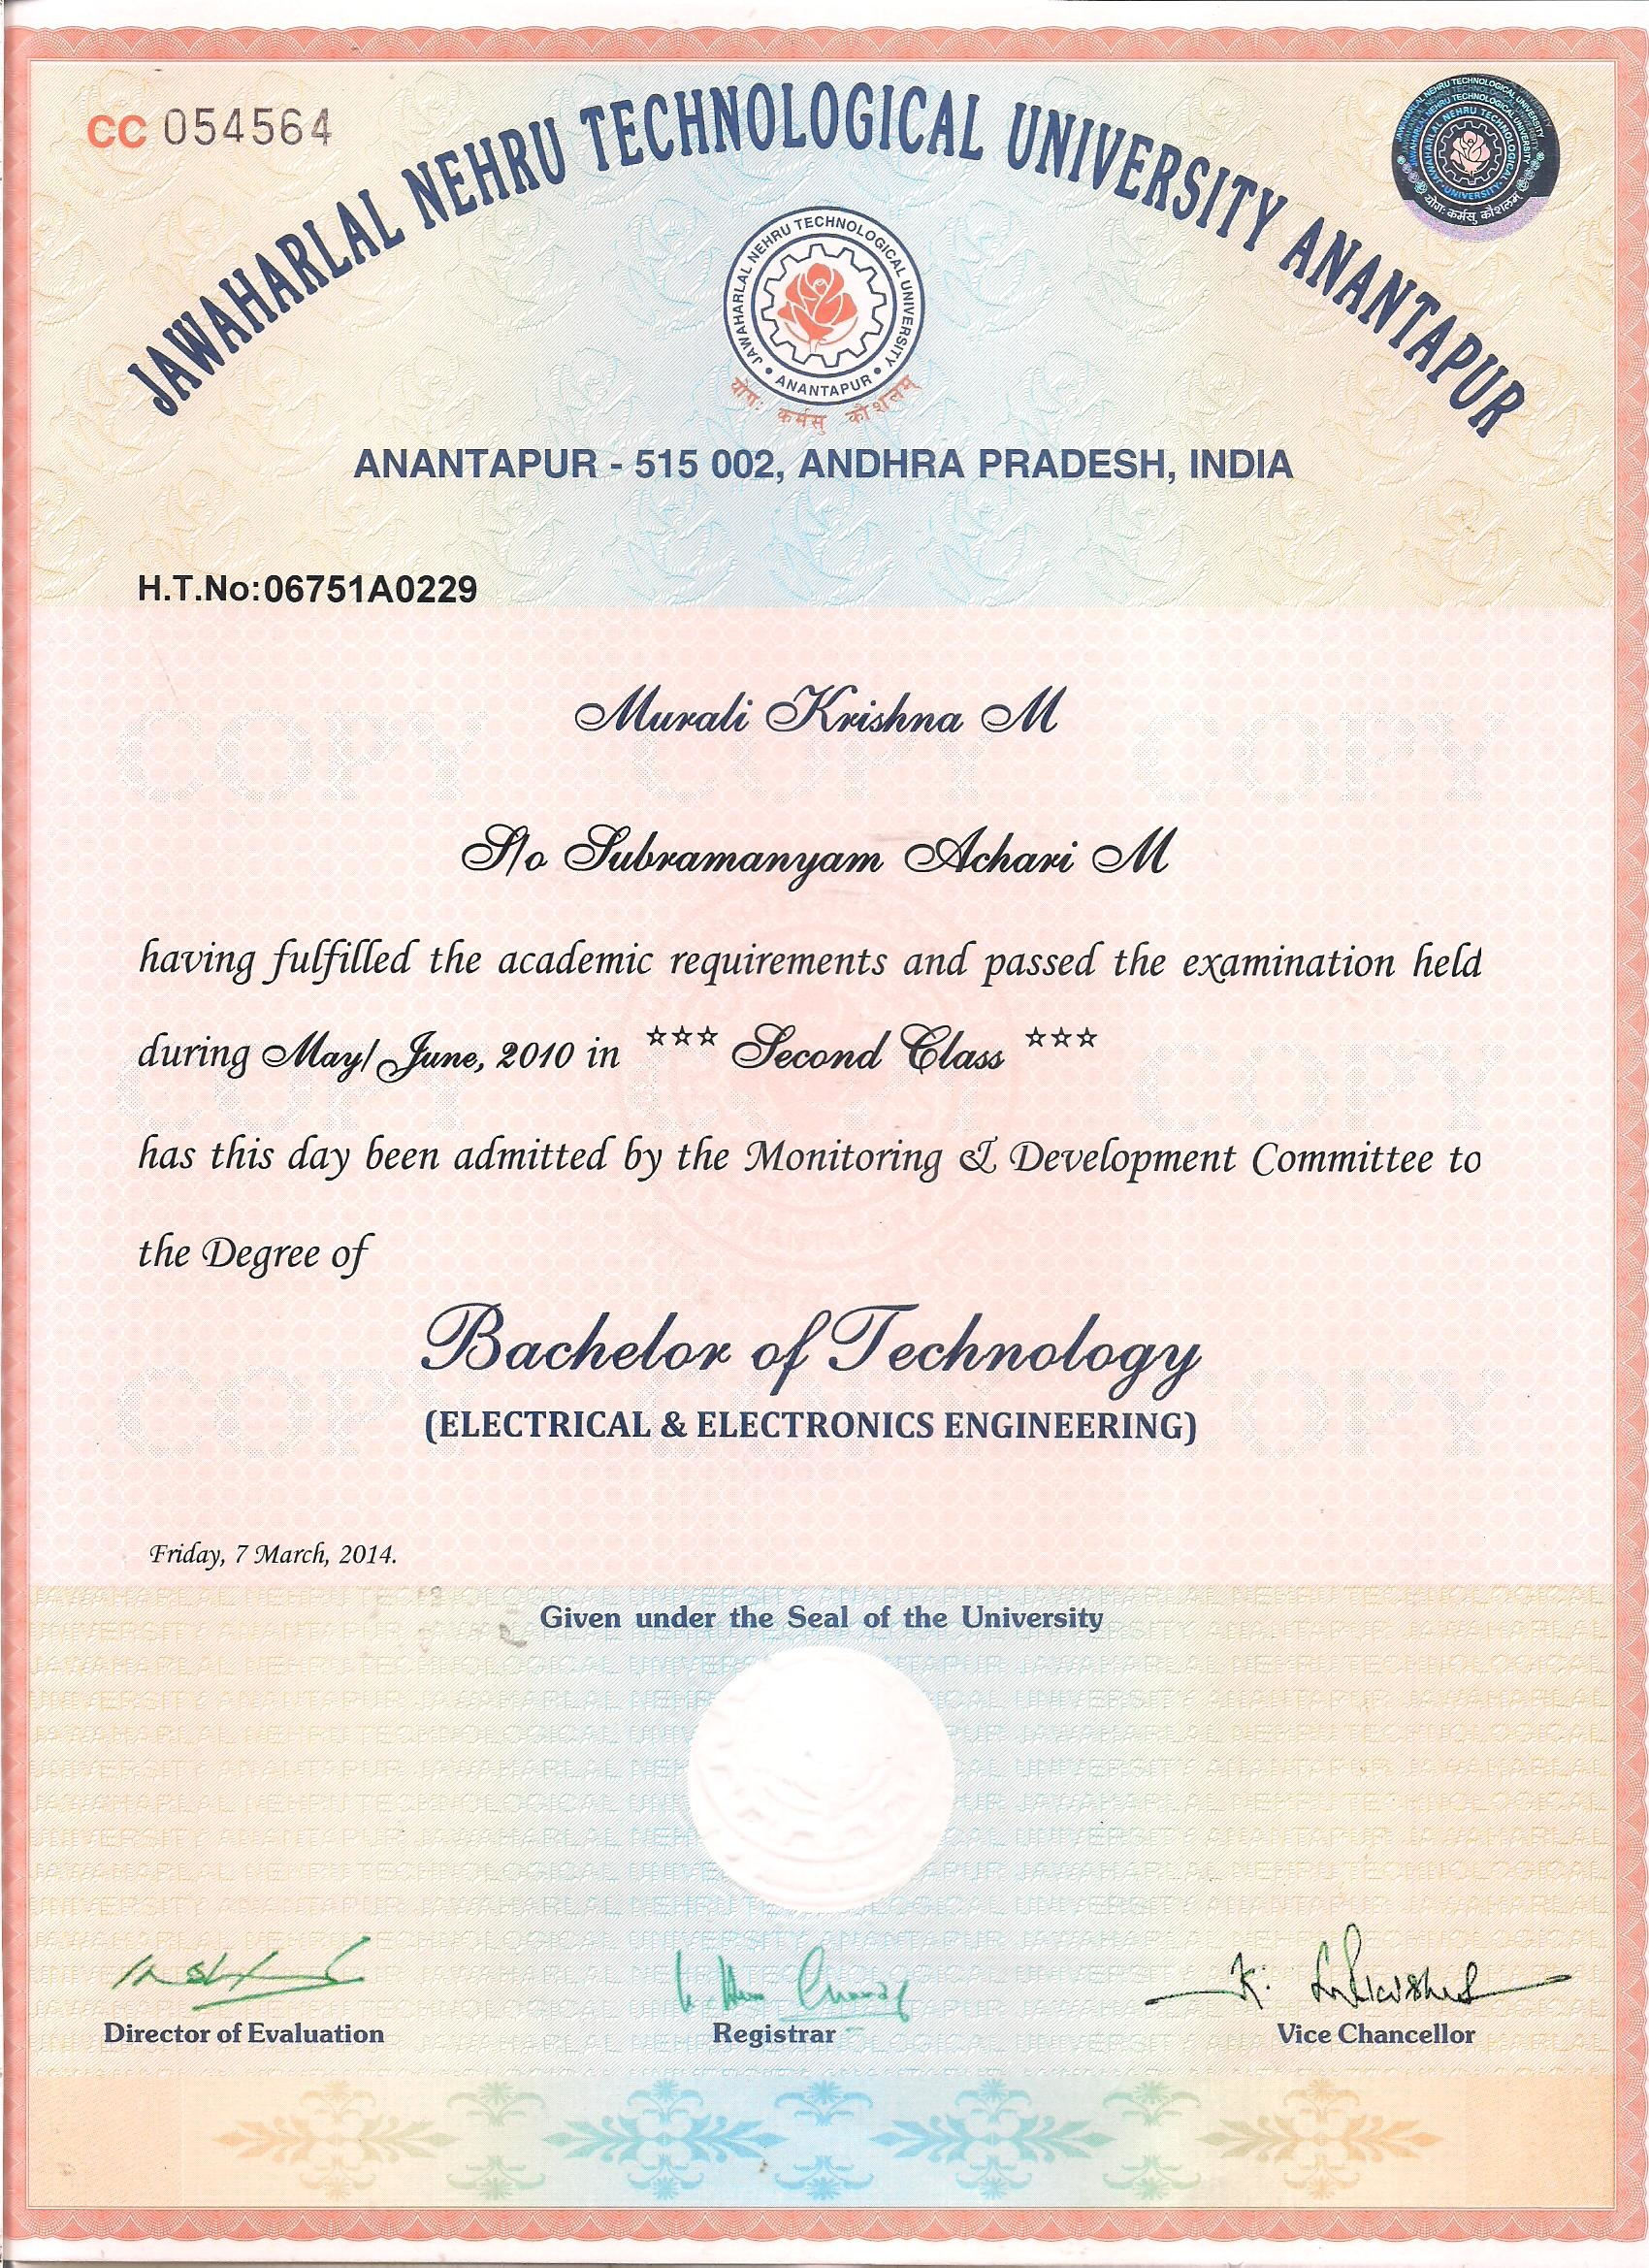 Bachelor Of Technology In Electrical U0026 Electronics Engineering From  Jawaharlal Nehru Technological University (JNTU Anantapur), Chittoor,  SITAMS, With 2010.